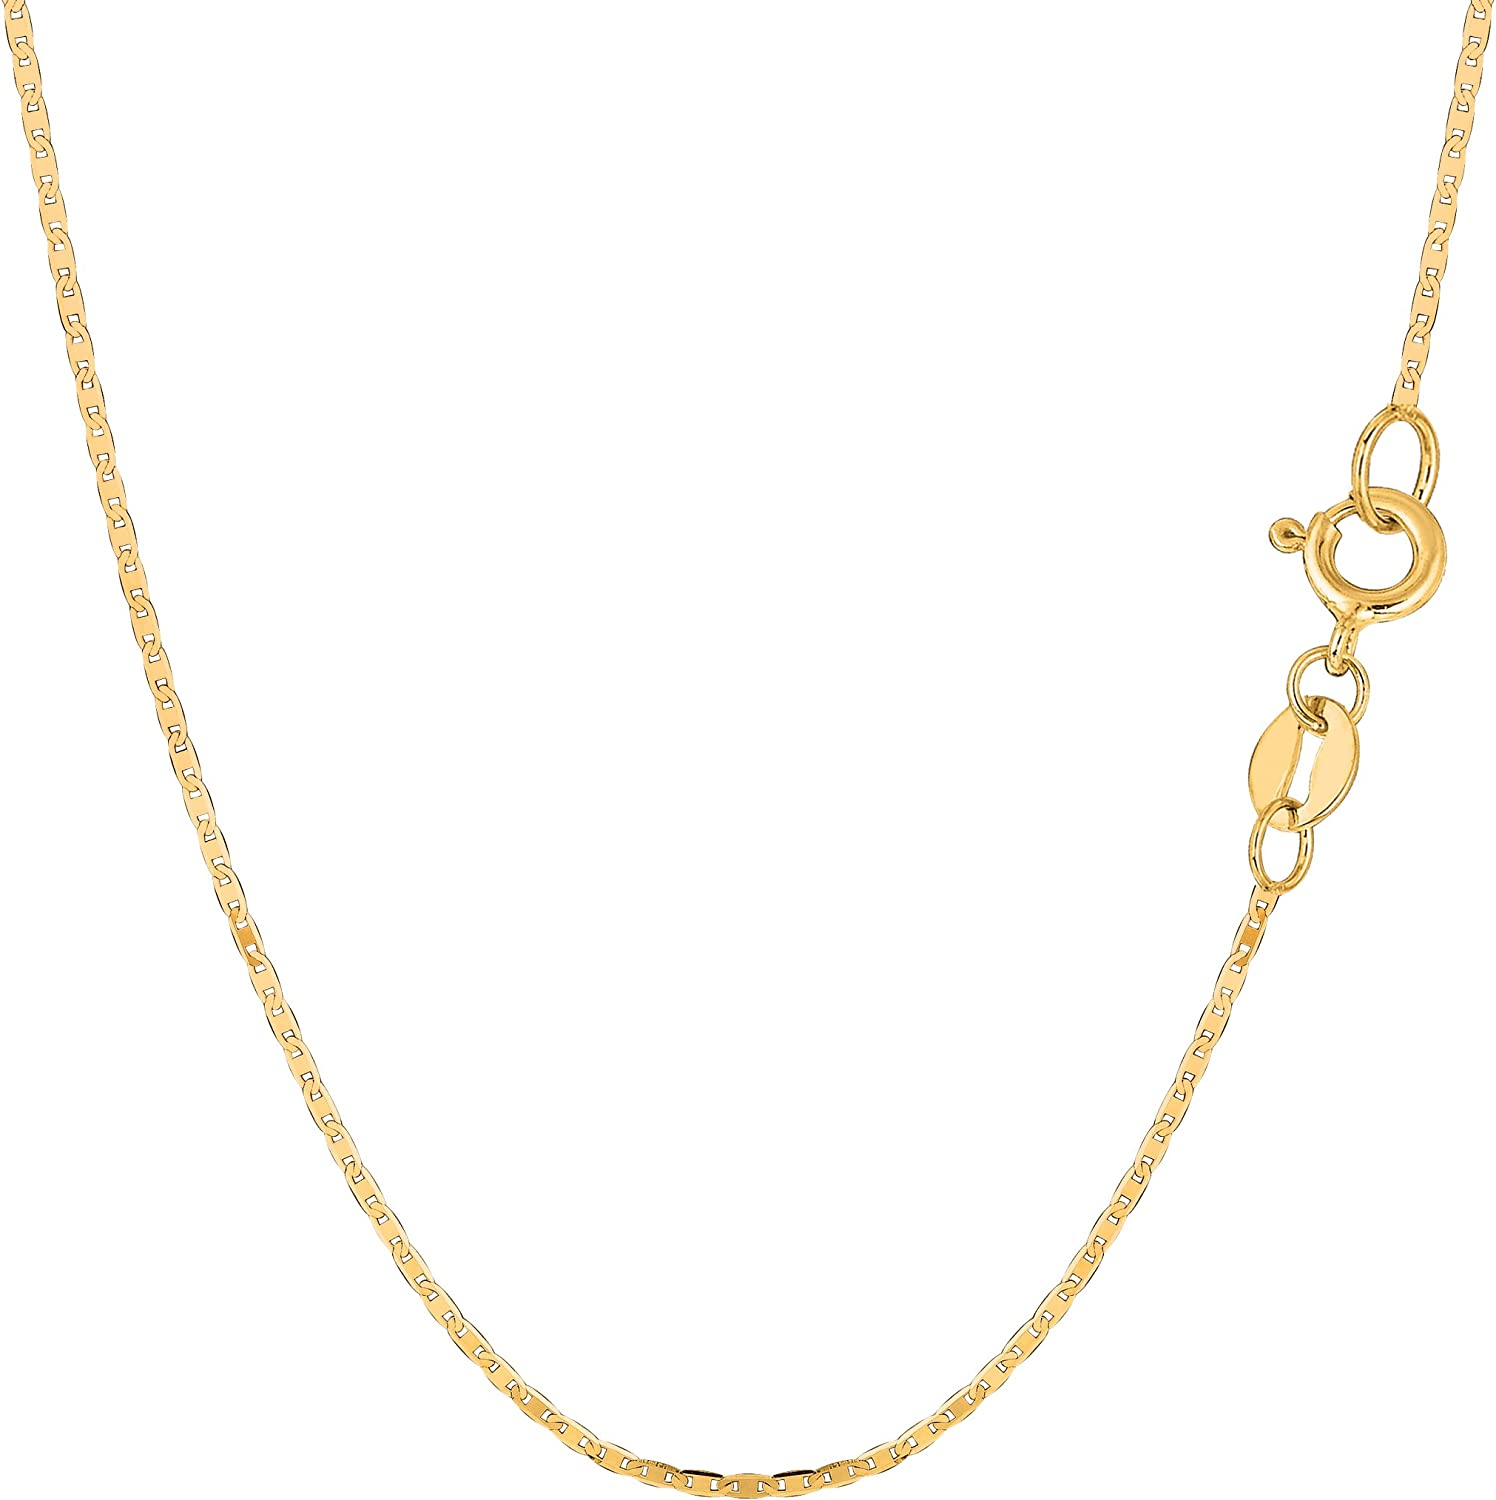 10k Yellow Gold Mariner Link Chain Necklace, 1.2mm